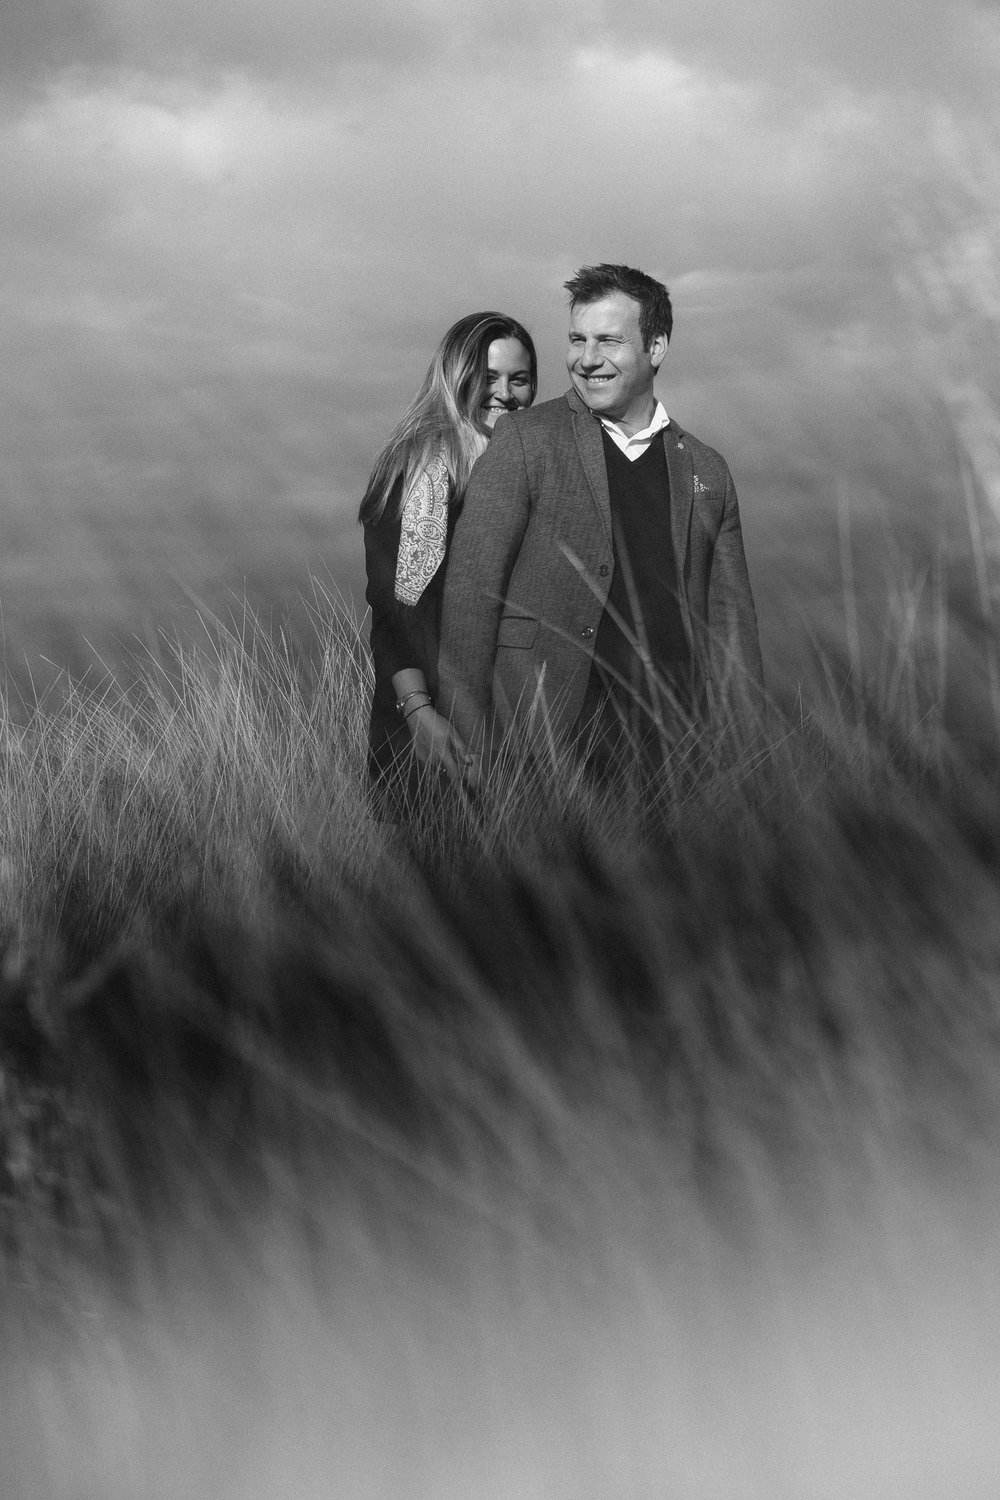 A black and white photo of a couple cuddling with out of focus long grass blowing in the wind